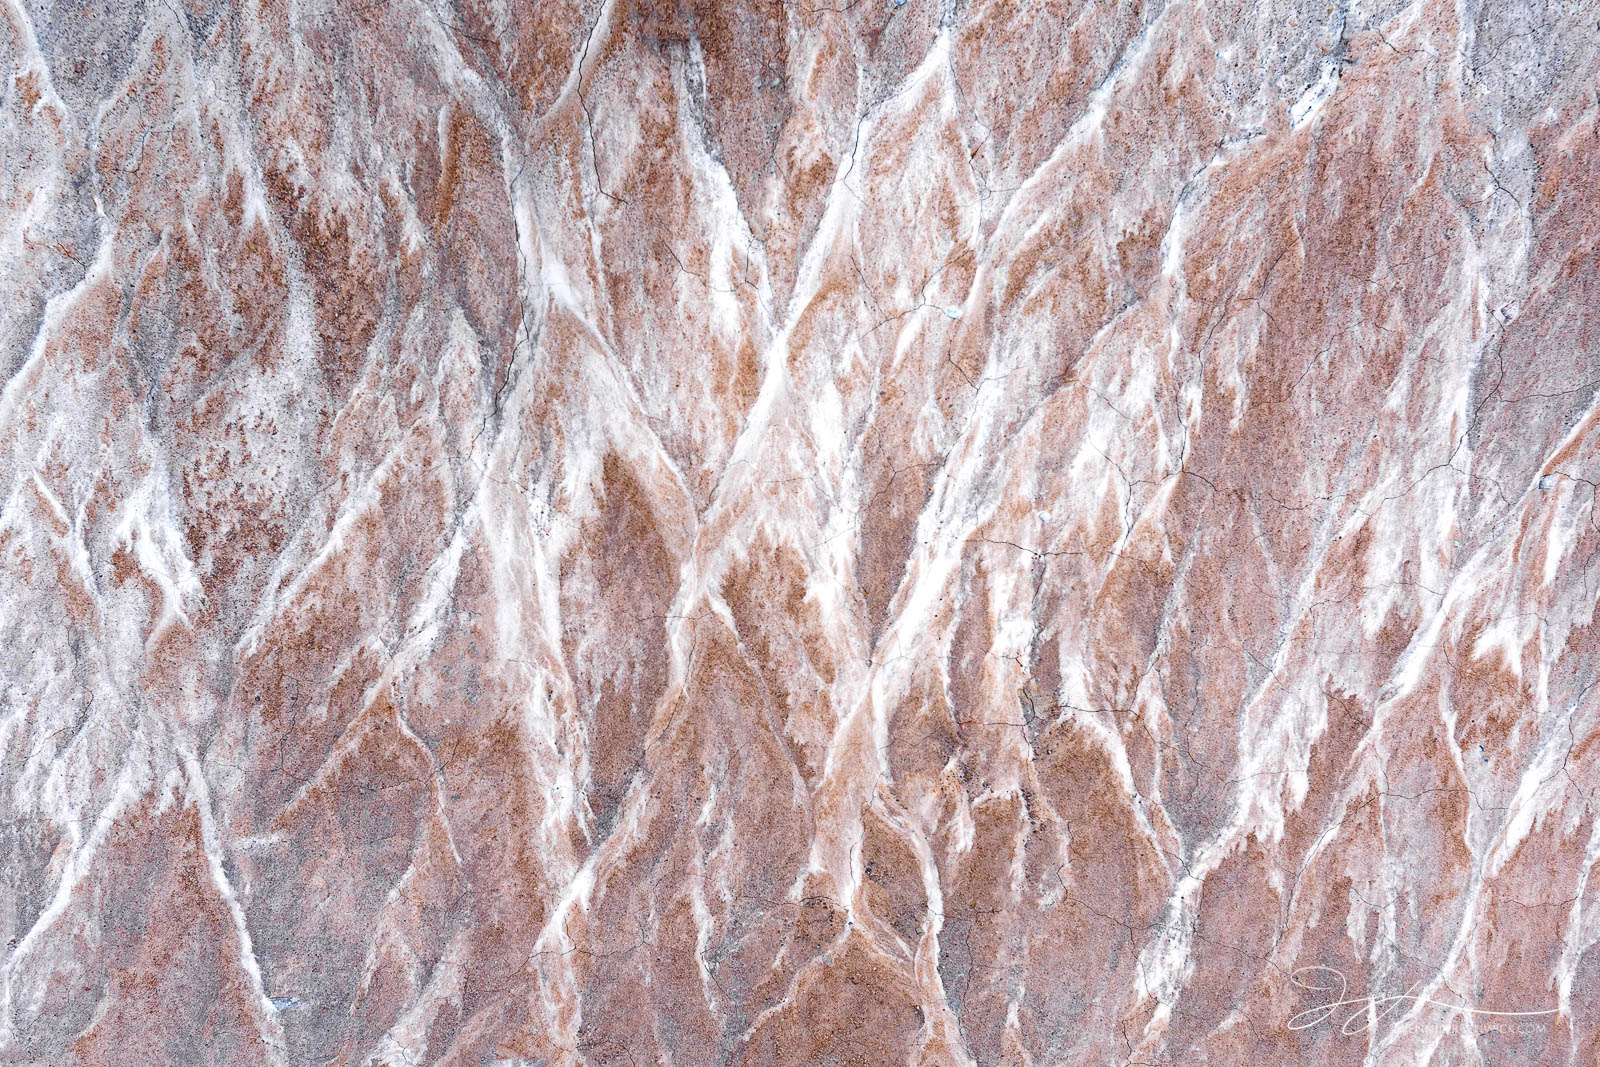 Death Valley National Park, Mojave Desert, abstract photography, California, desert, mud, textures, zabriskie point, mud flow, patterns, photo